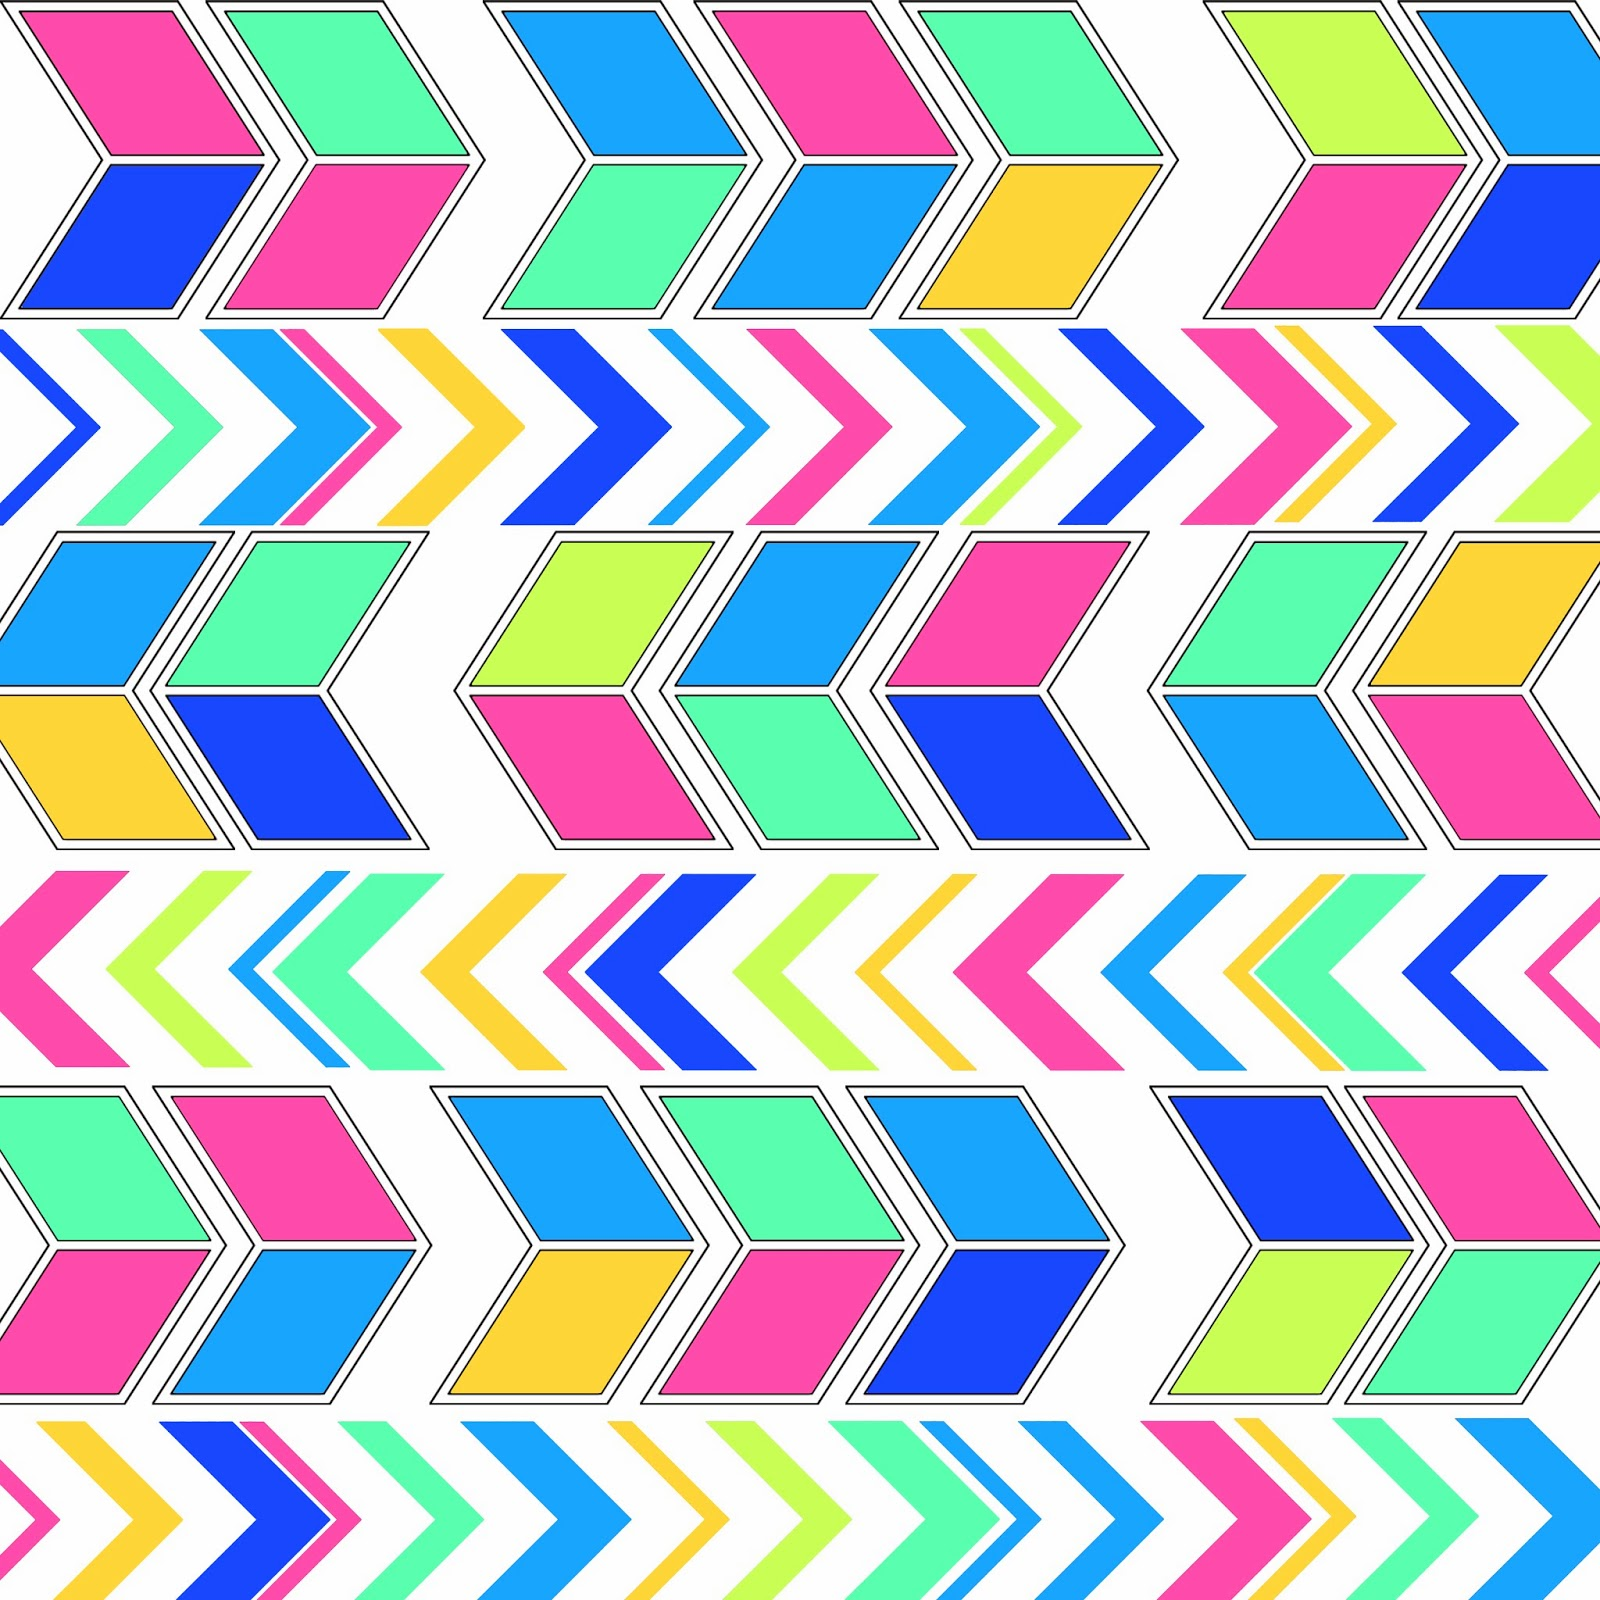 Colorful Arrow Chevron Freebies Backgrounds